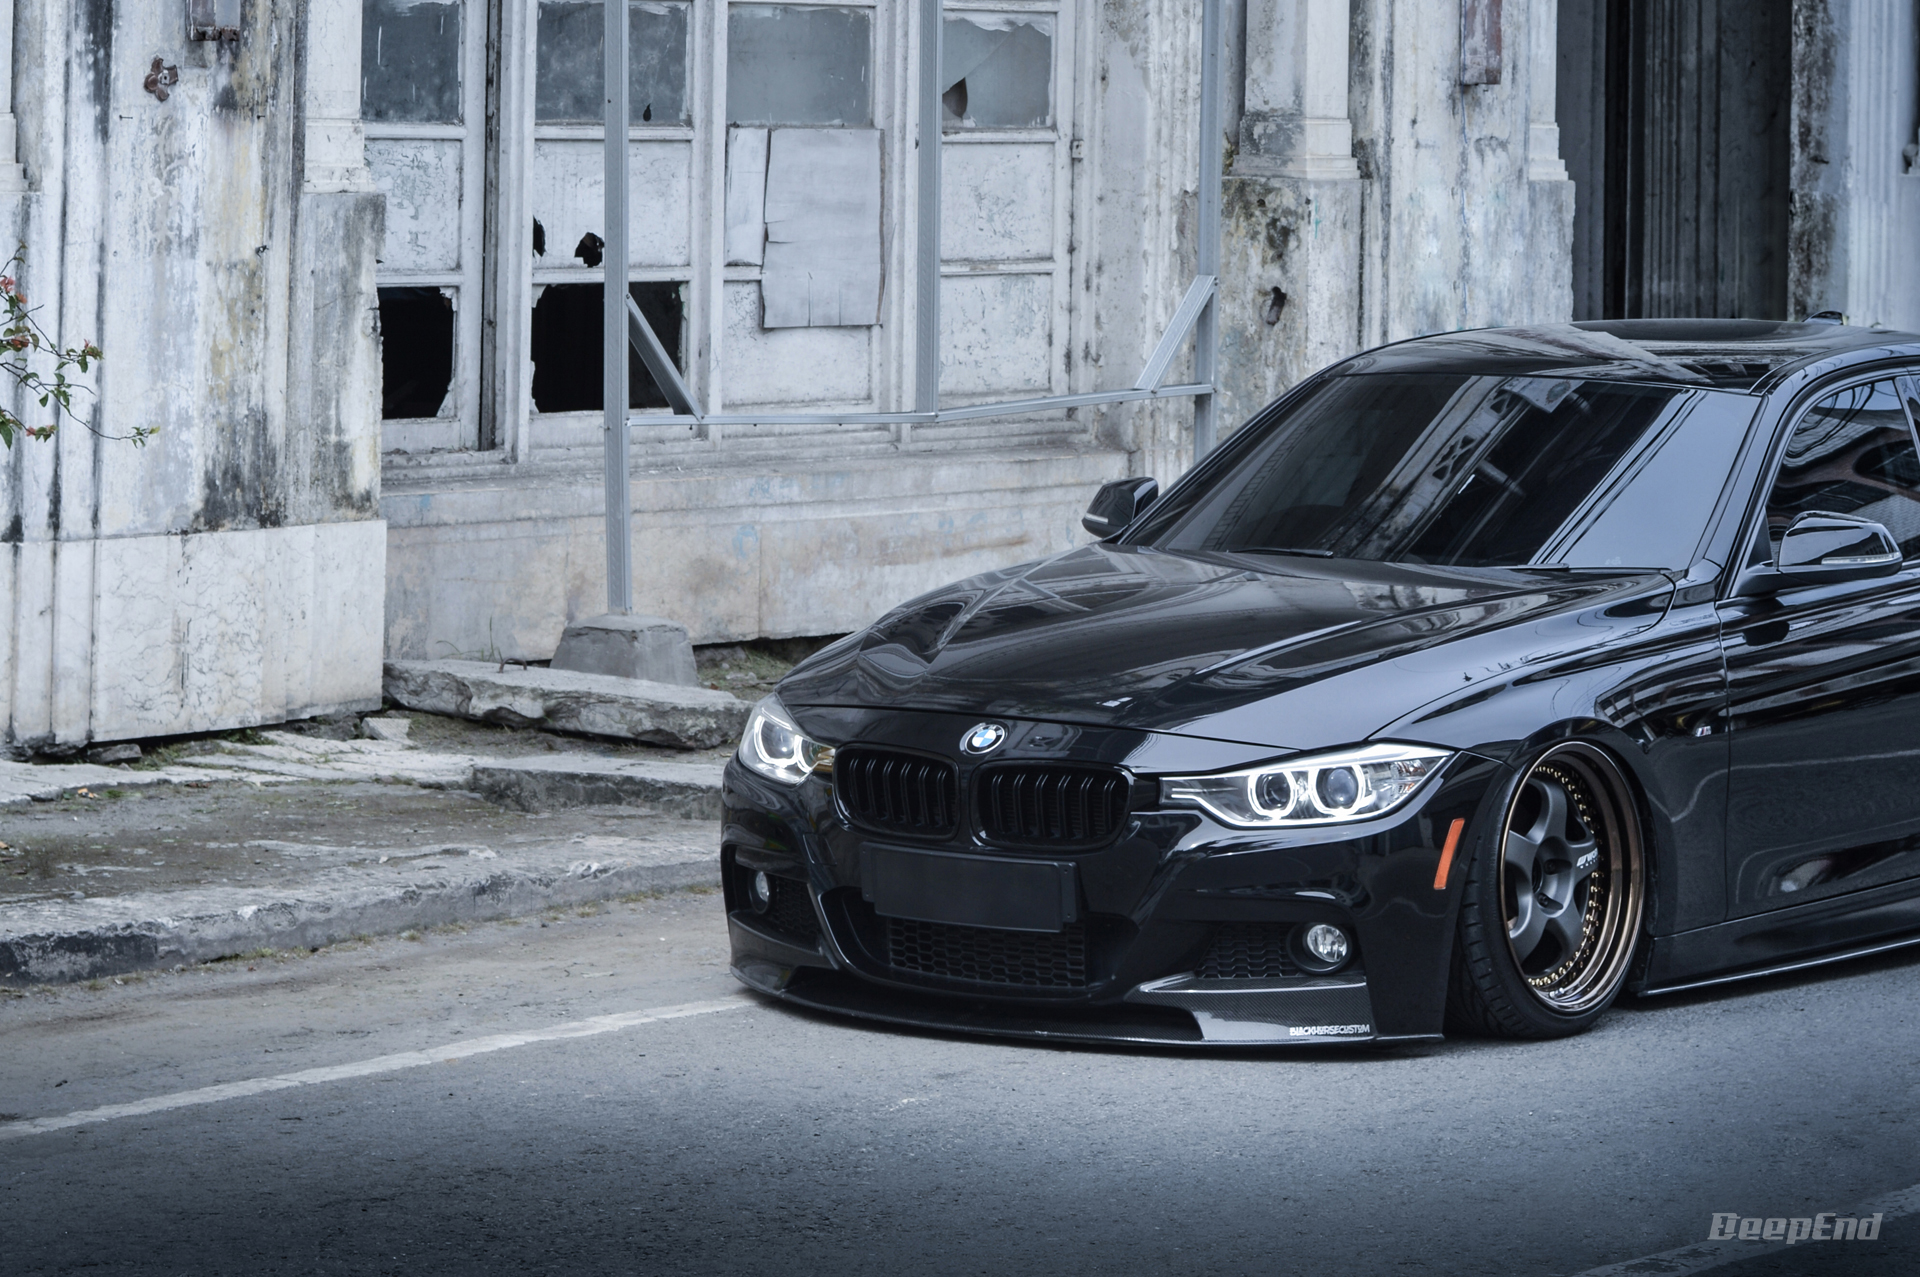 Mister Meister Magnetik F30 With Stance Fitment Goal Deepend